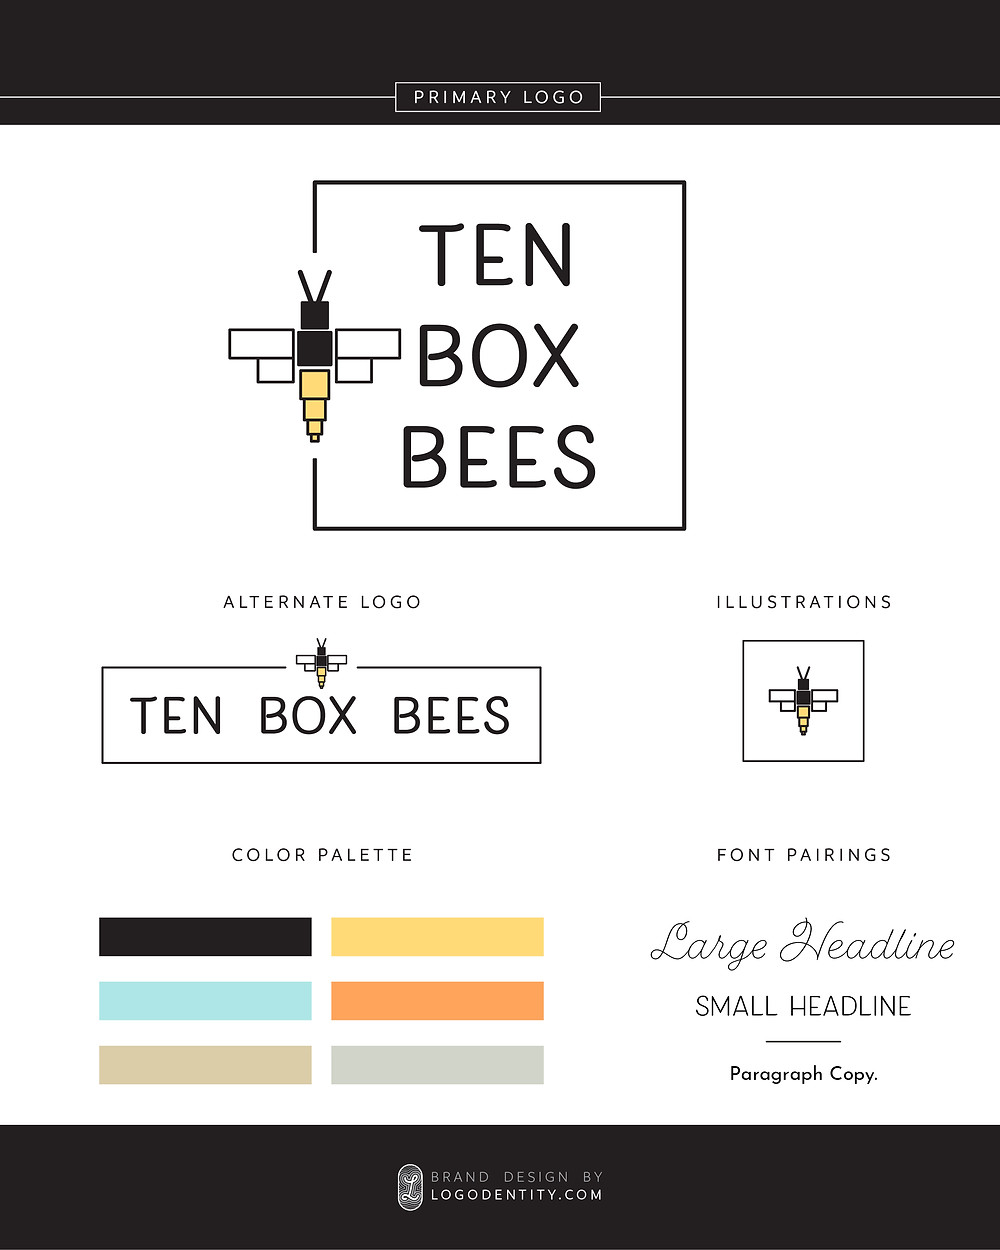 Ten Box Bees Mini Brand Style Guide by Logodentity